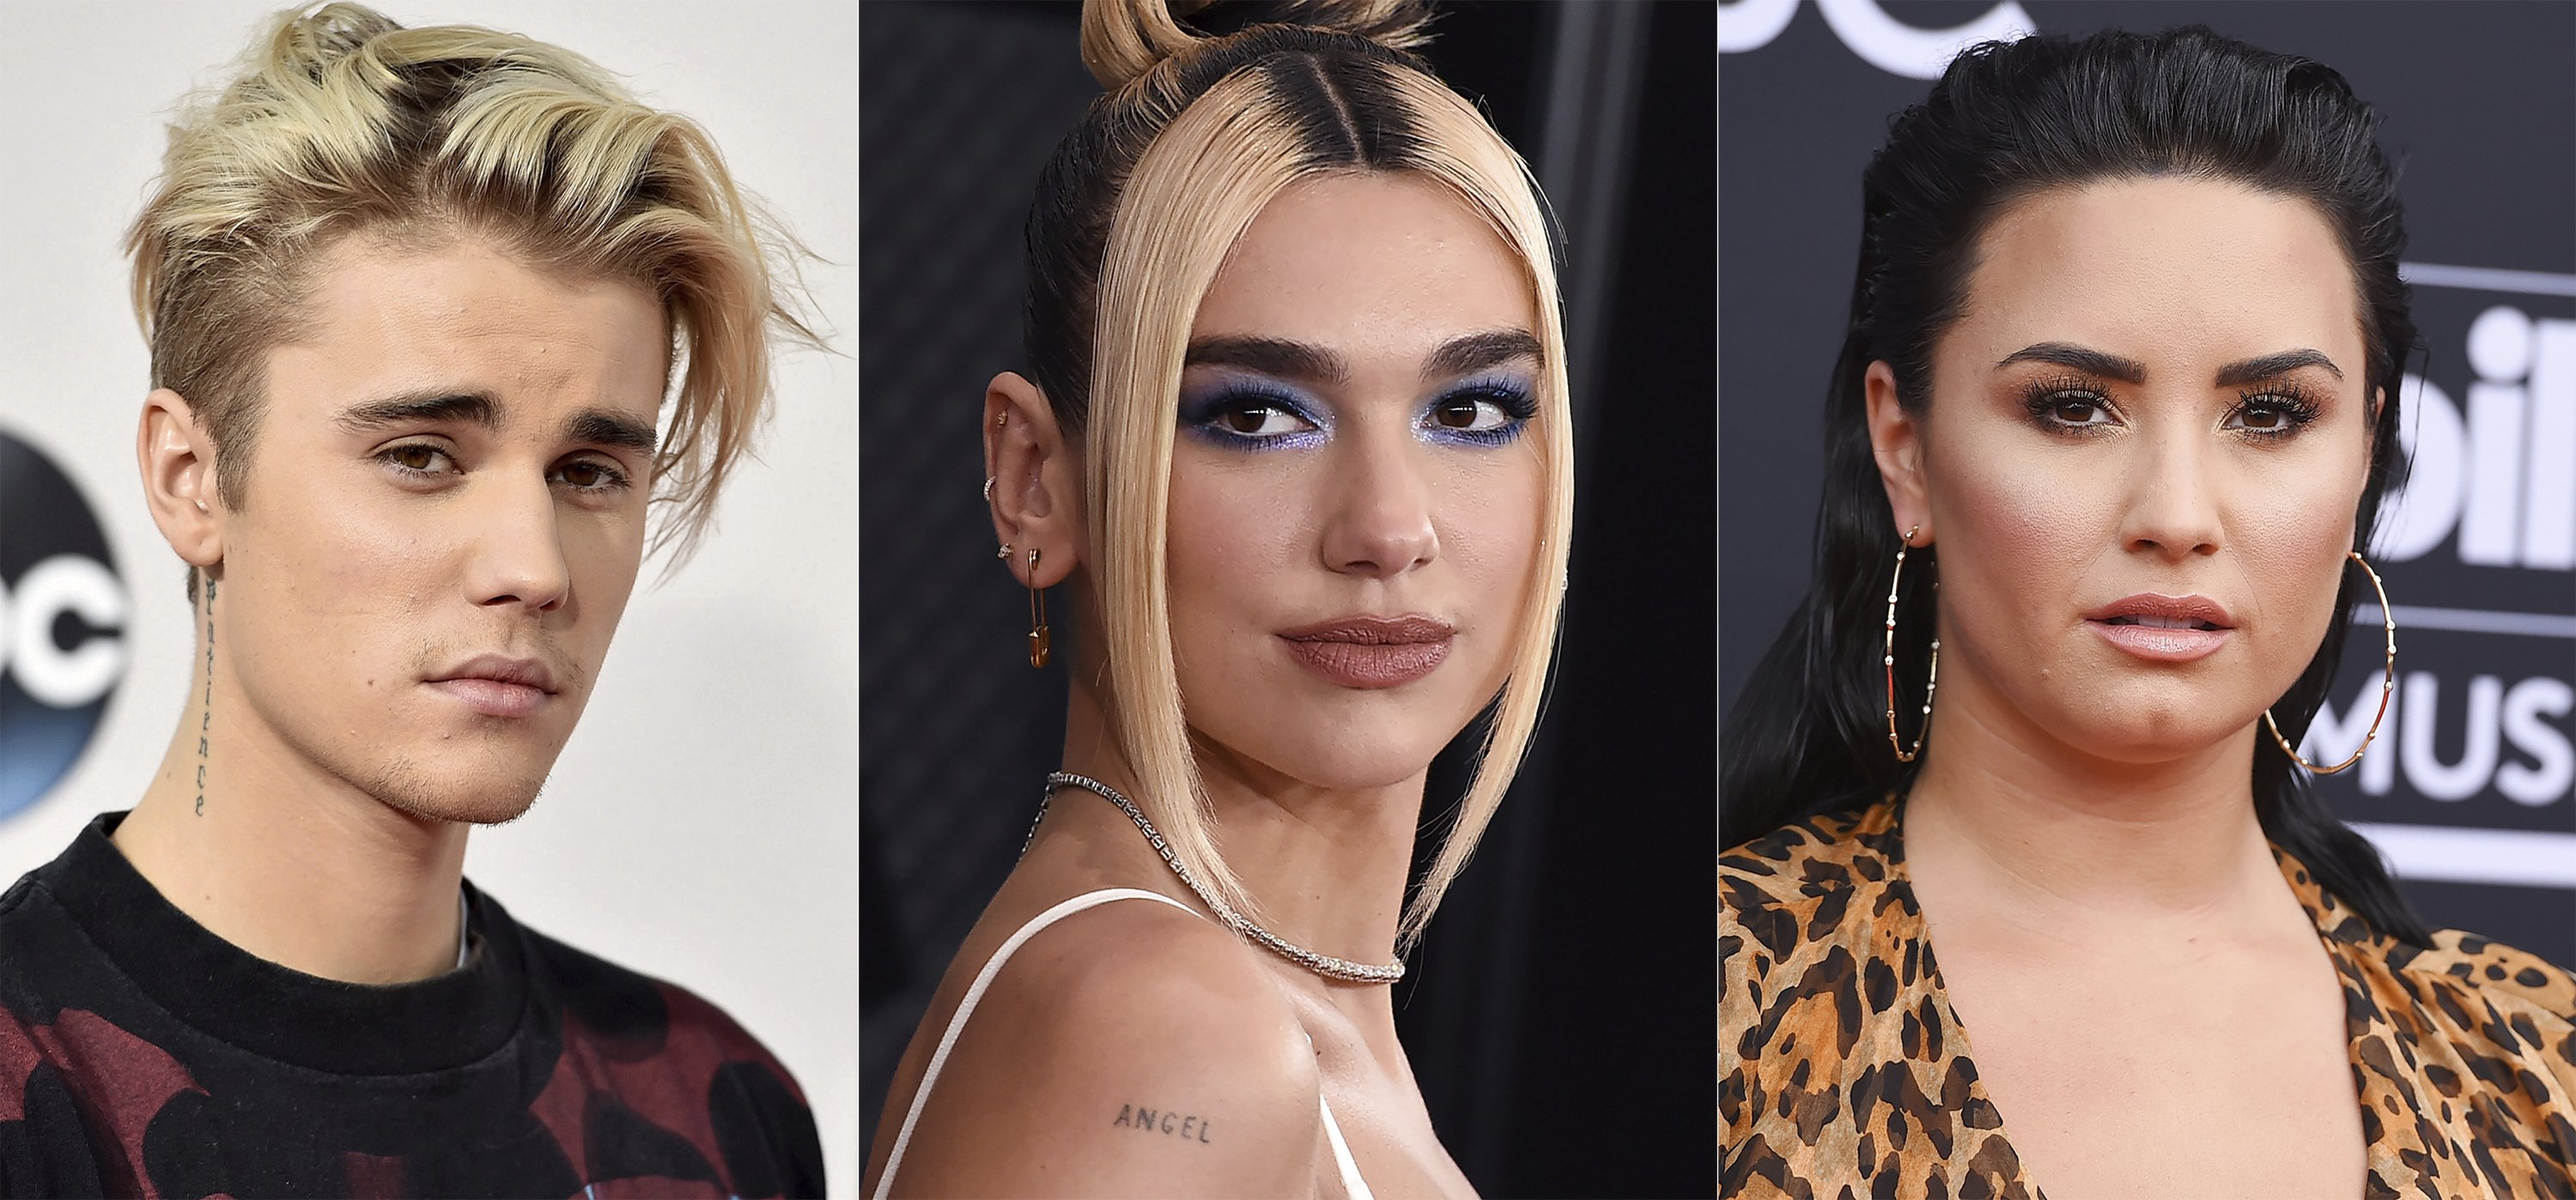 Celebrities unite to various get-out-the-vote efforts